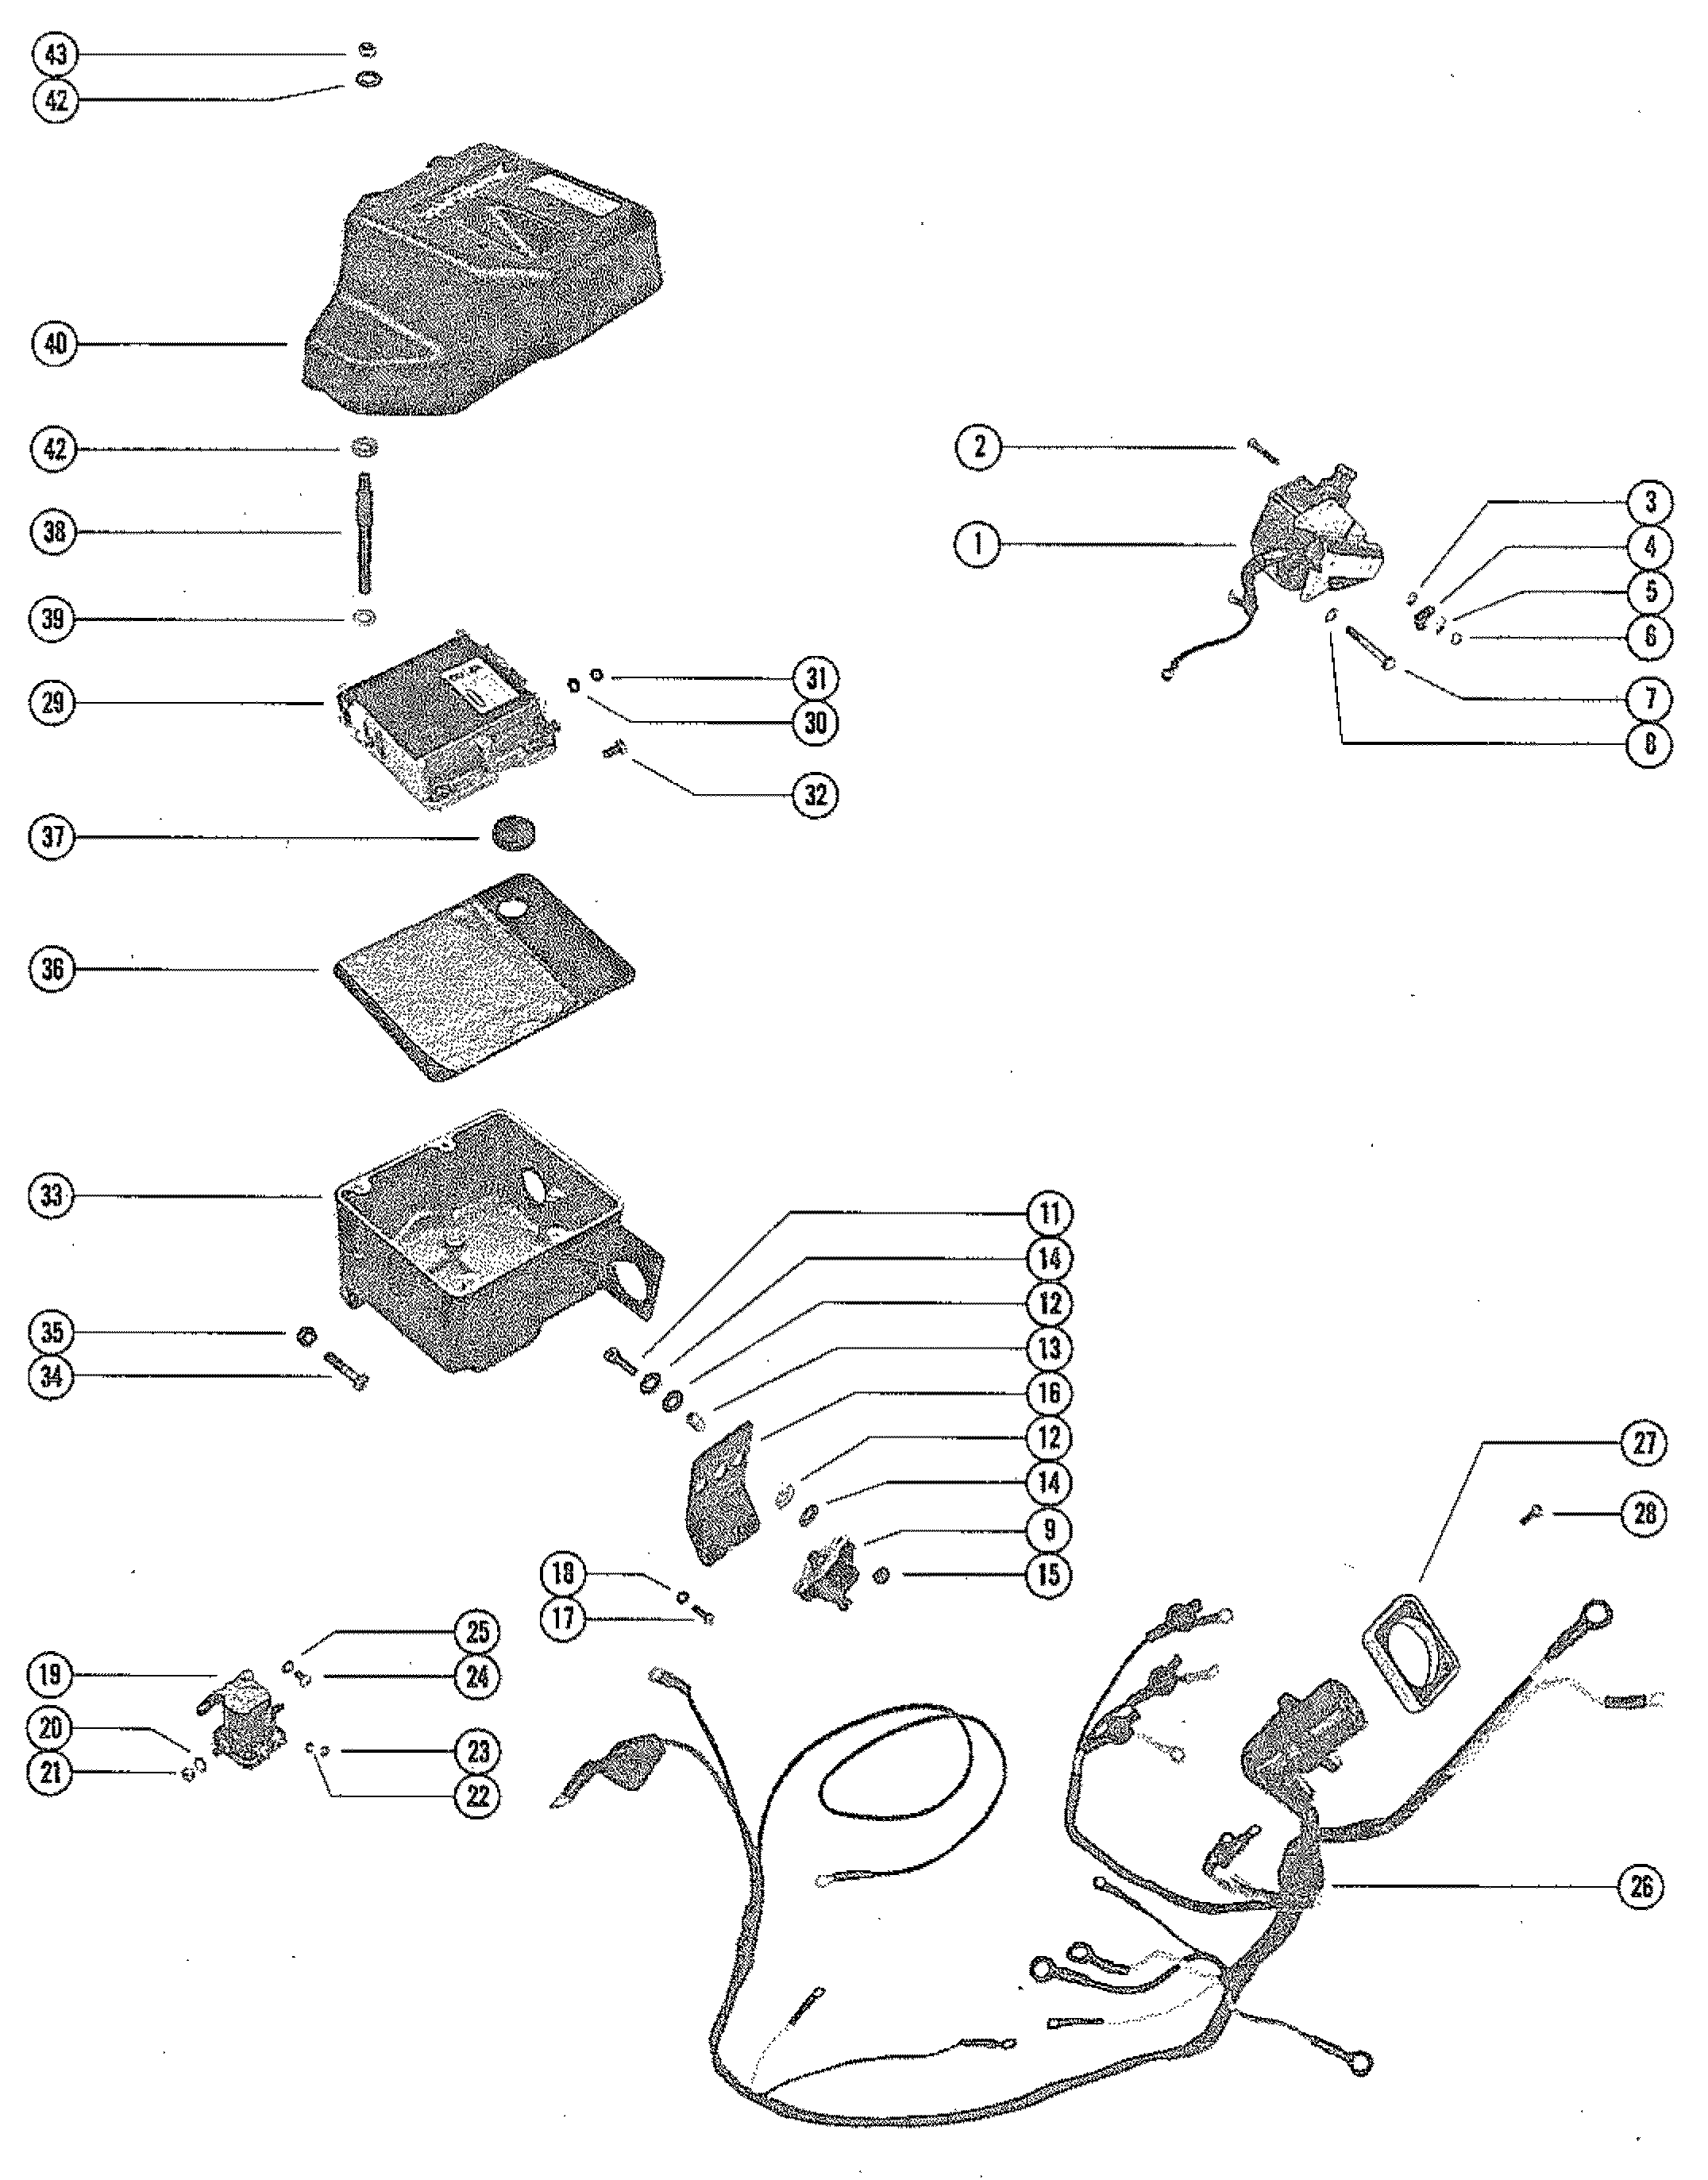 A8 ������� ��������� mercruiser ��������� 330 gm 454 v 8 1977 1981 mercruiser thunderbolt iv ignition module wiring diagram at gsmx.co